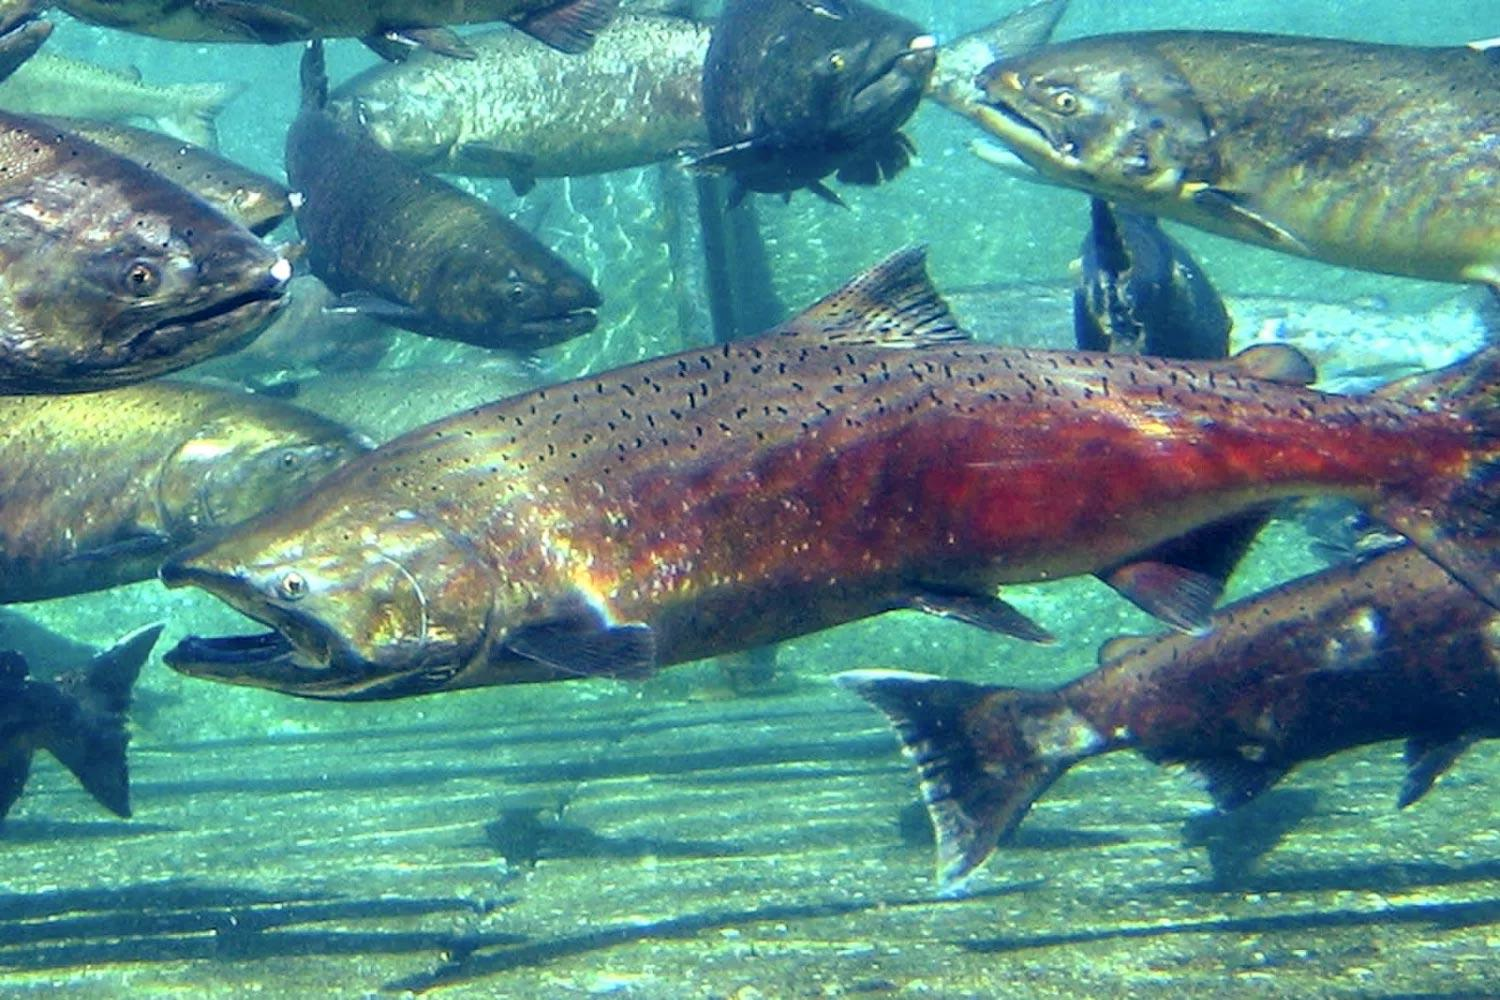 Adult Chinook salmon.